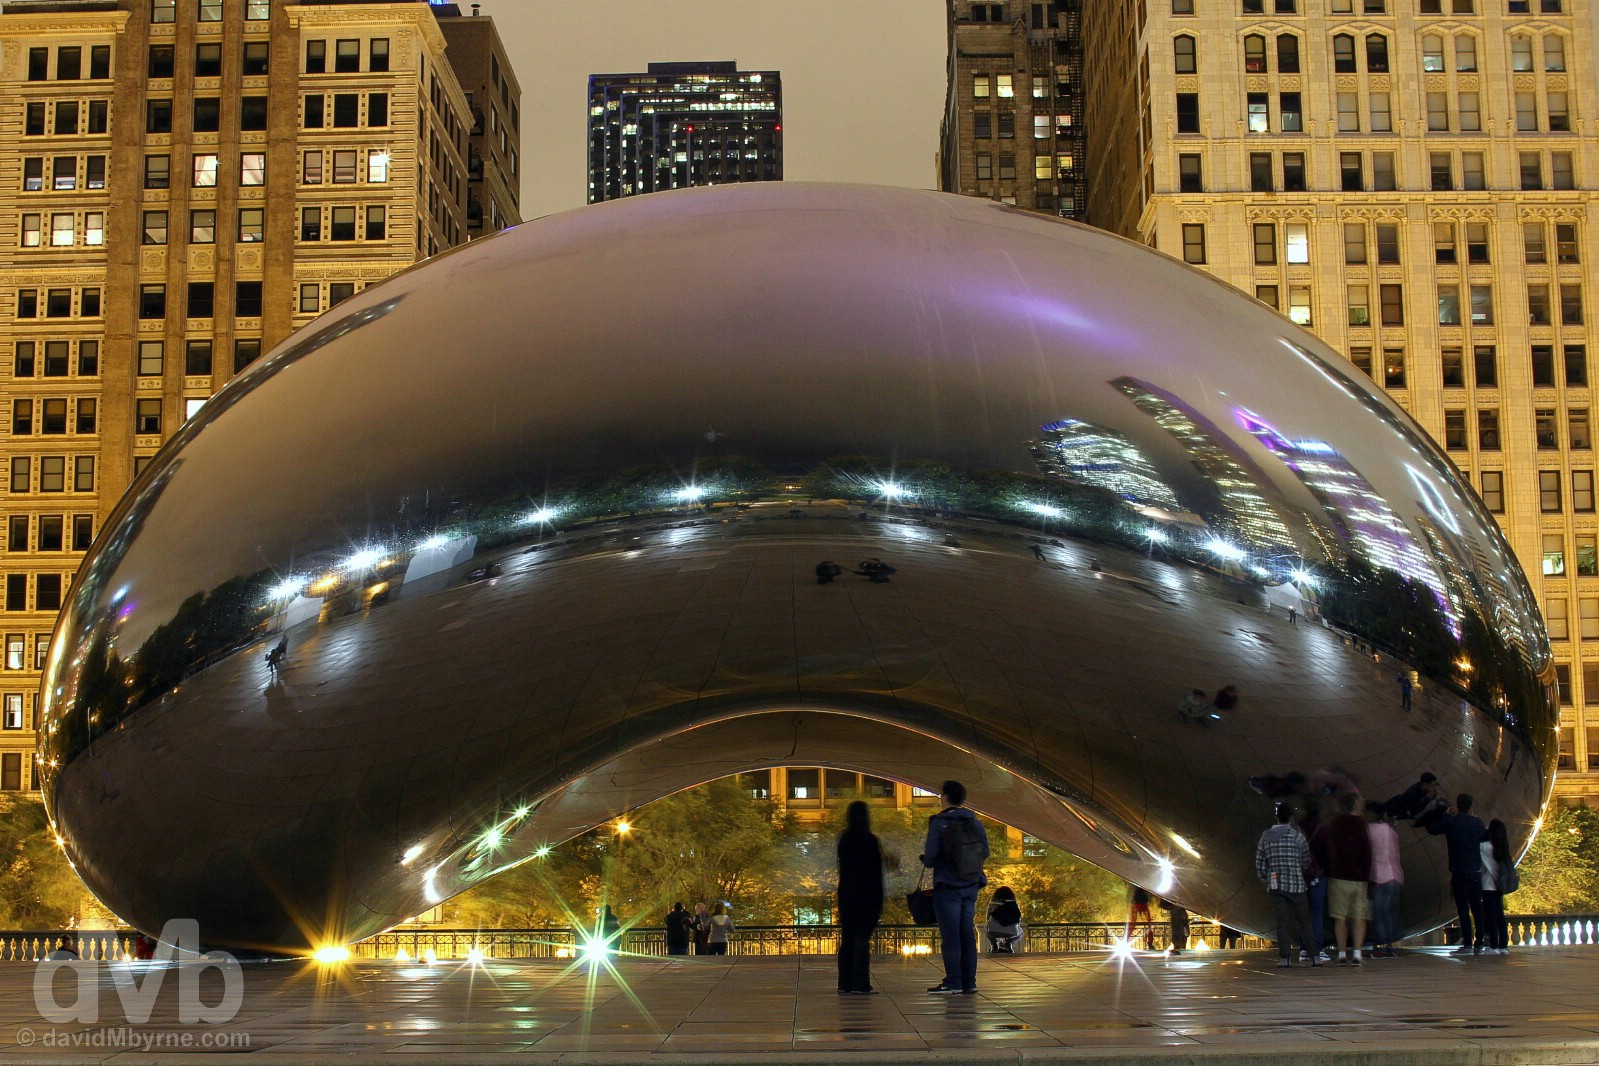 Cloud Gate, a.k.a. The Bean, in Millennium Park, Chicago, Illinois, USA. September 30, 2016.